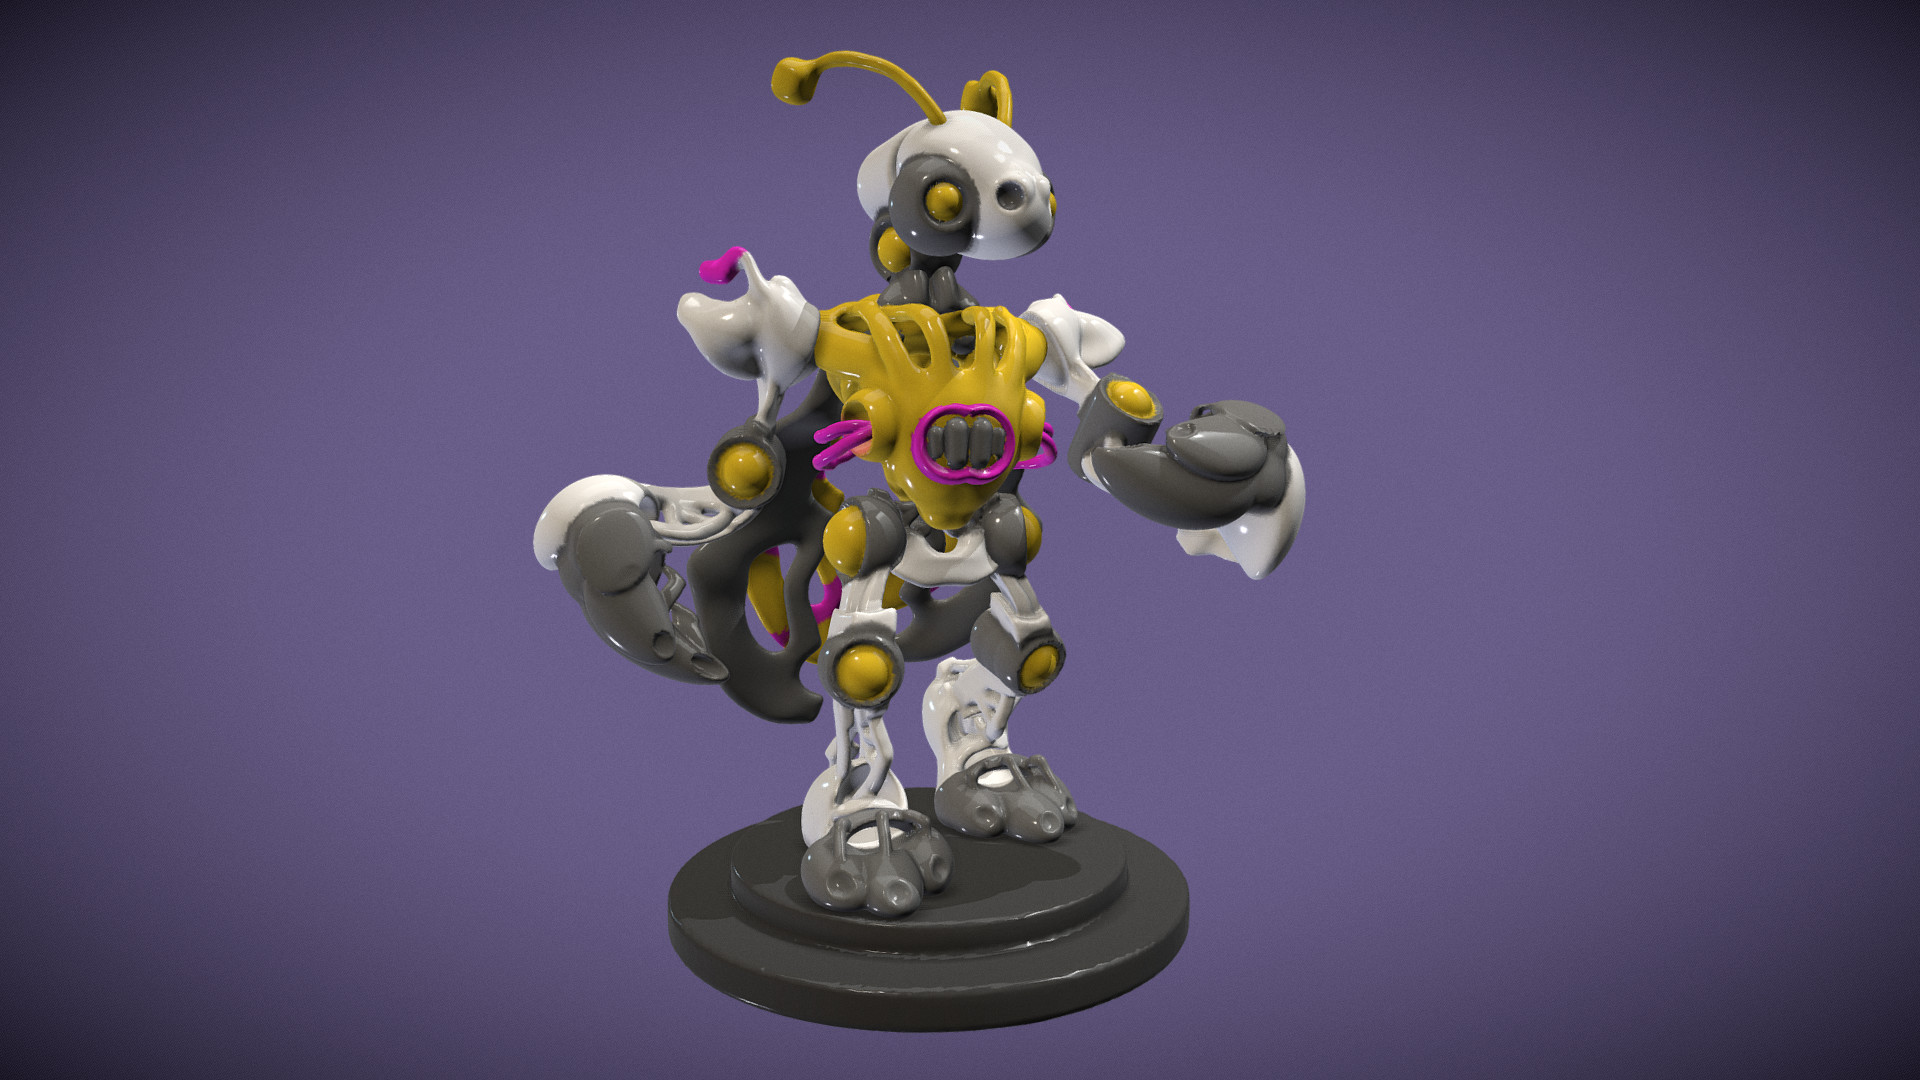 Scout windsor cute mech for oculus home